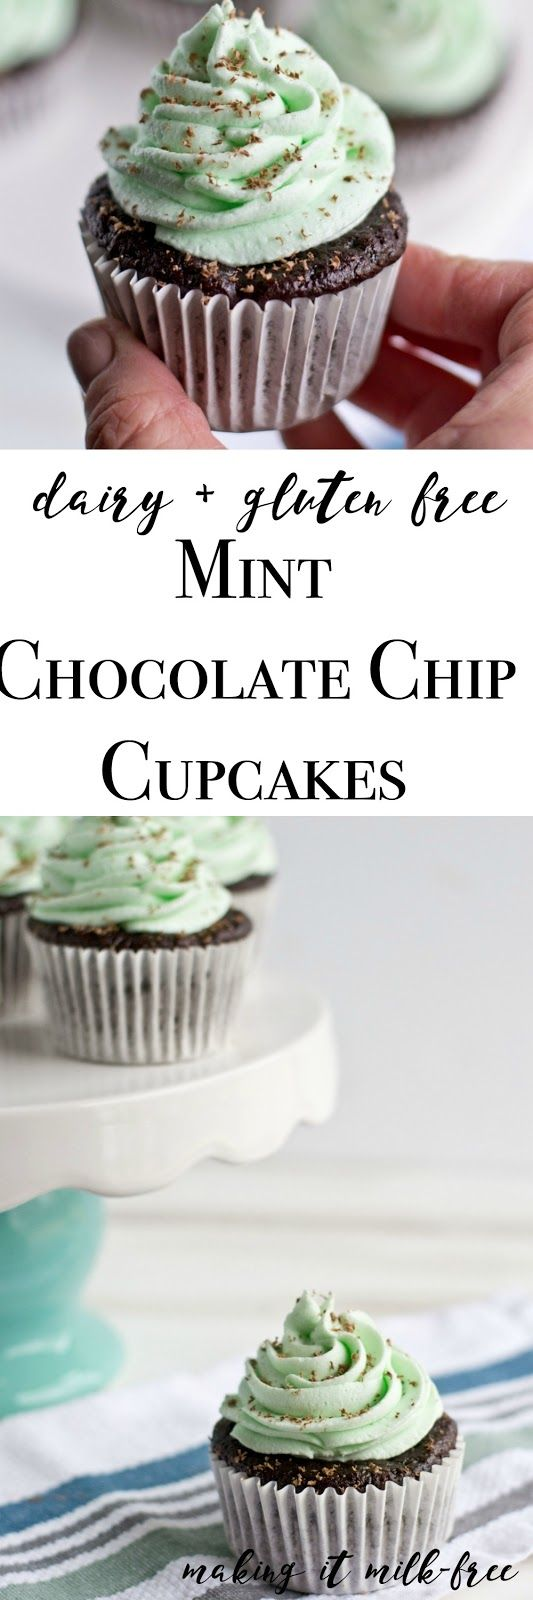 Dairy-free, gluten-free Mint Chocolate Cupcakes recipes with a bit of this crazy, beautiful life sprinkled in.